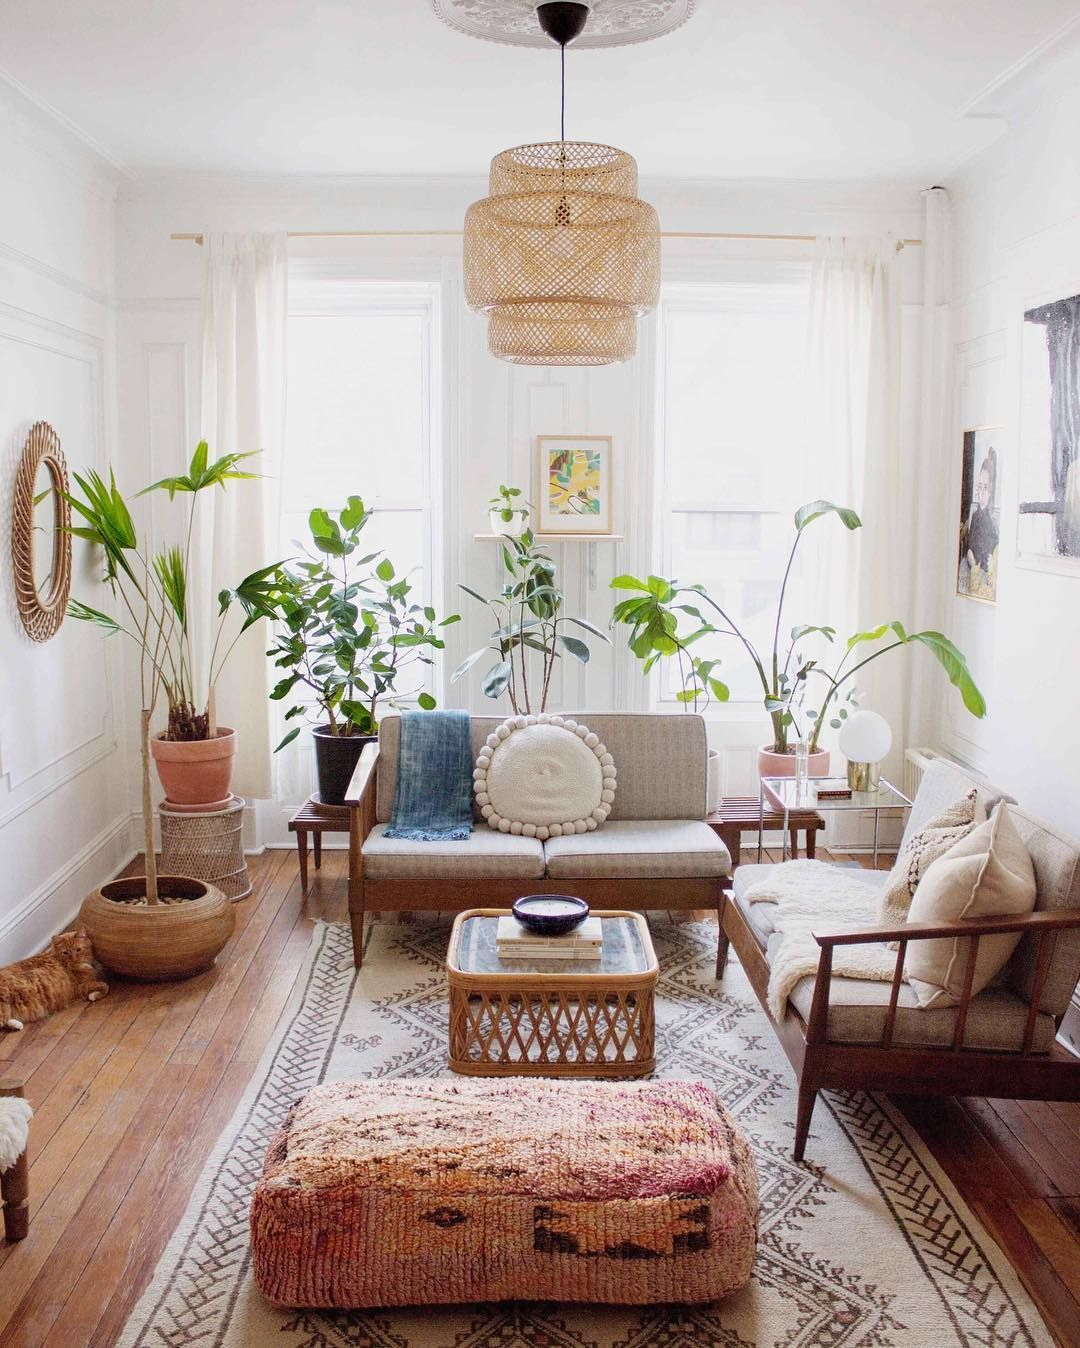 reserve_home has the right idea when it comes to creating the ...